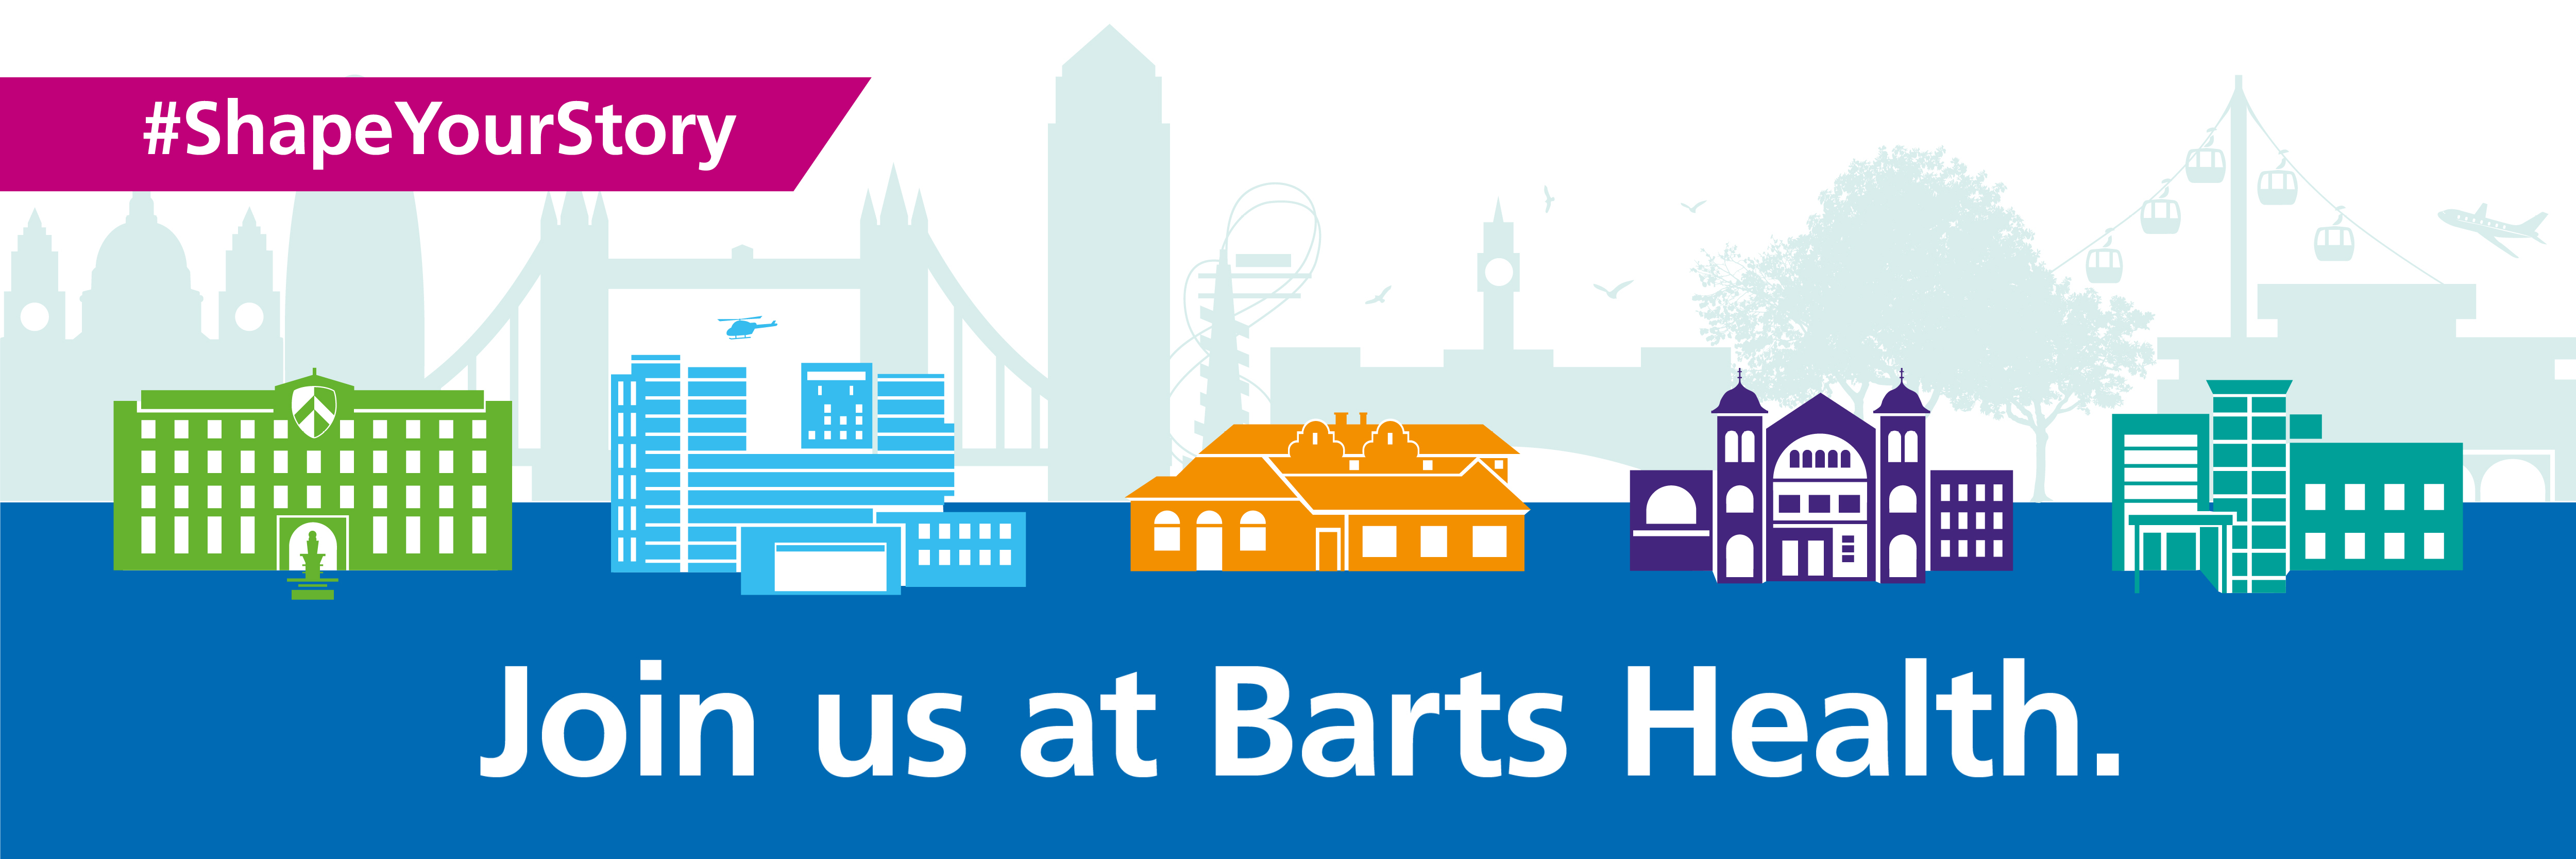 Shape your story at Barts Health